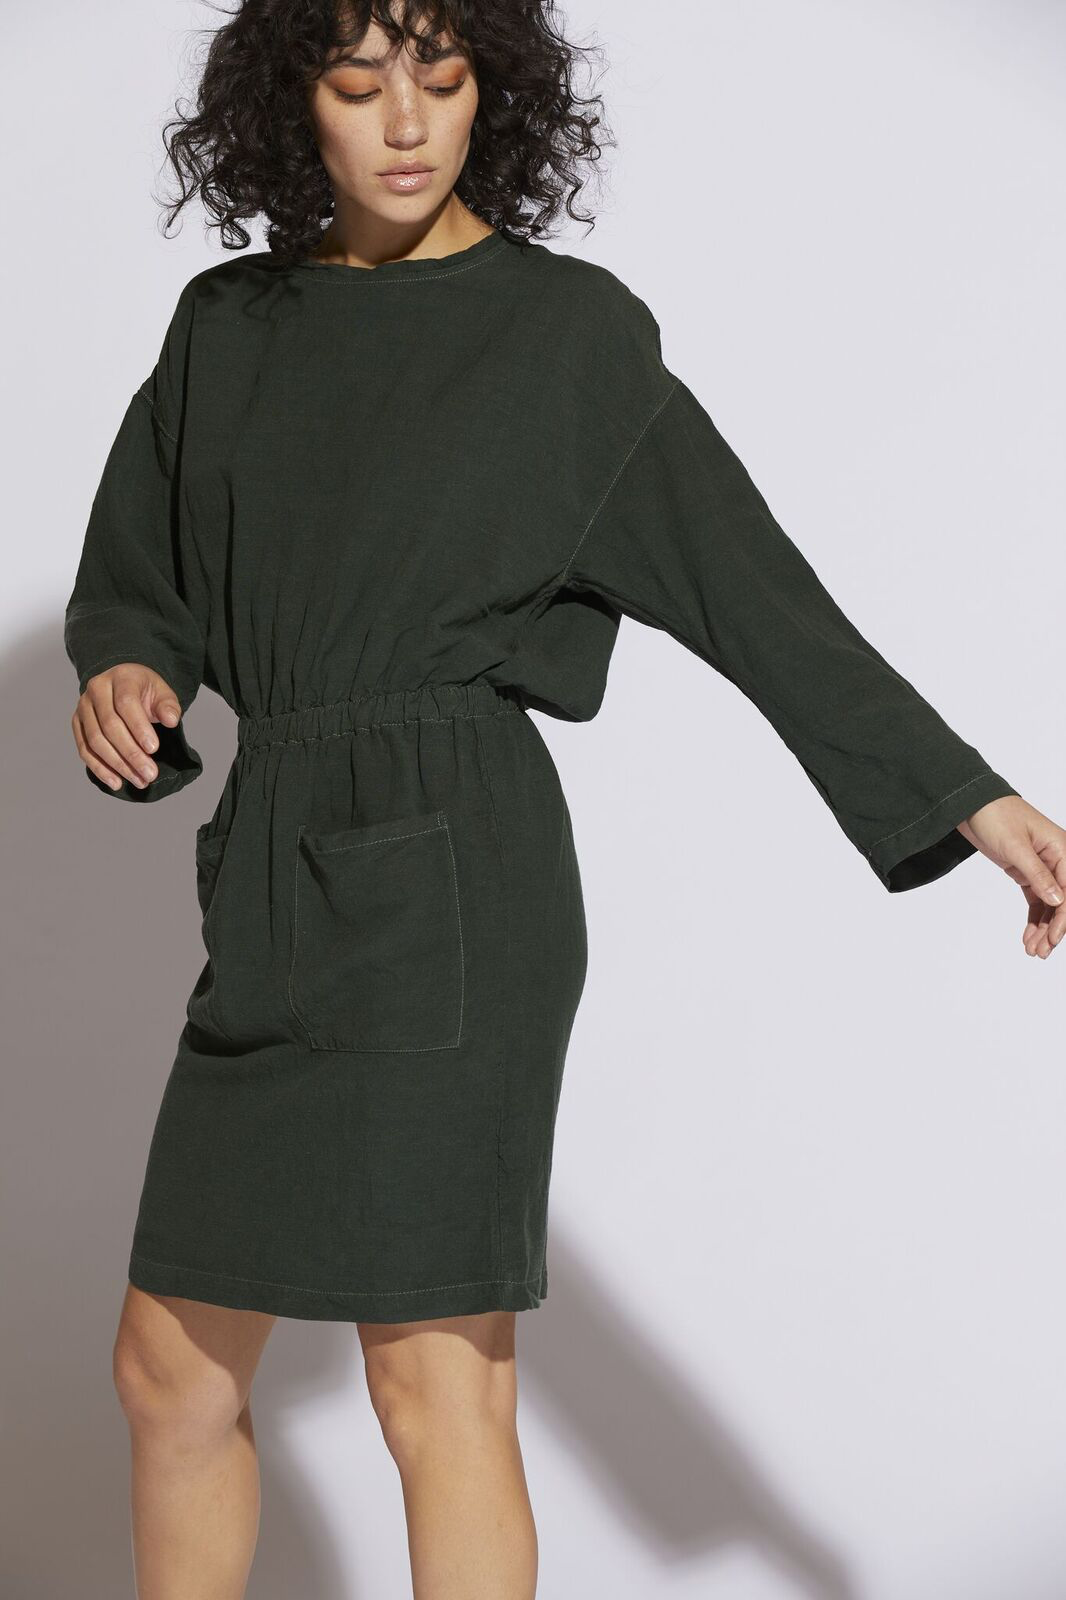 Lulyisa Drop Shoulder Dress